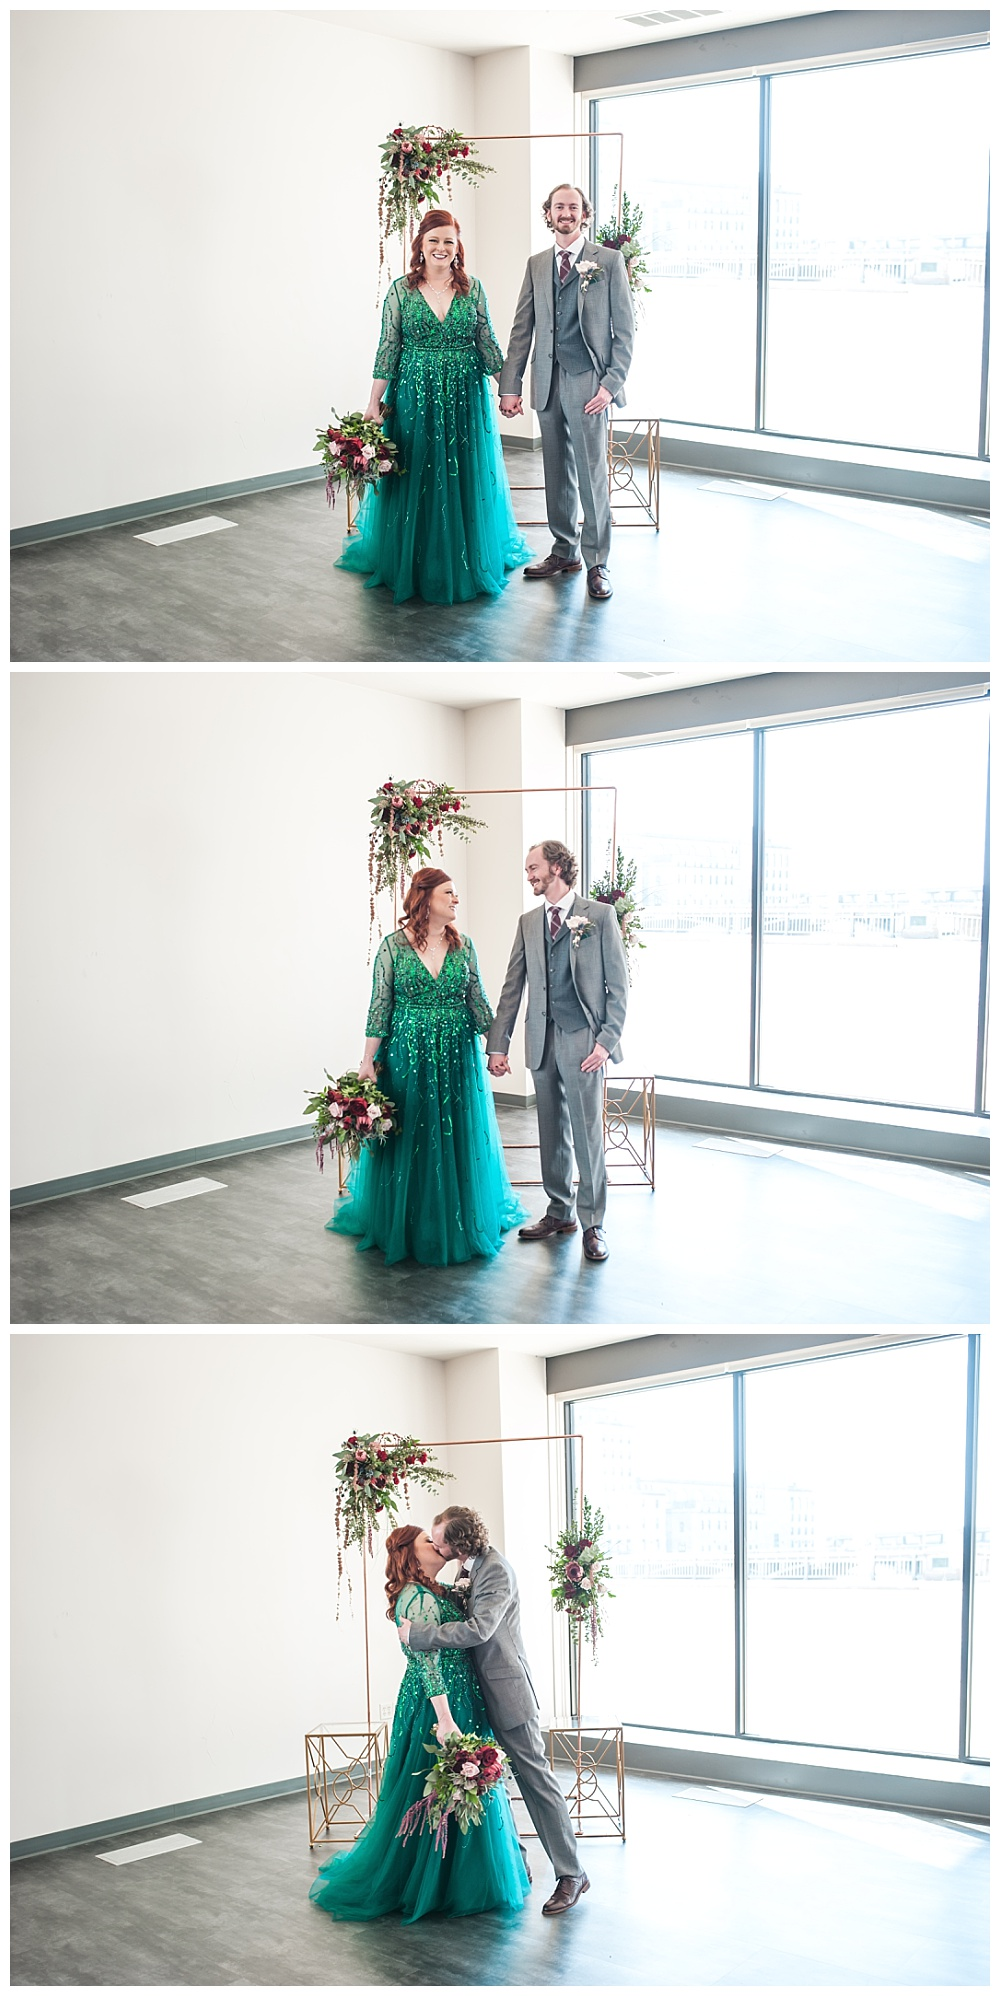 Stephanie Marie Photography Eastbank Venue and Lounge Cedar Rapids Iowa City Wedding Photographer Pete Leslie Akers 62